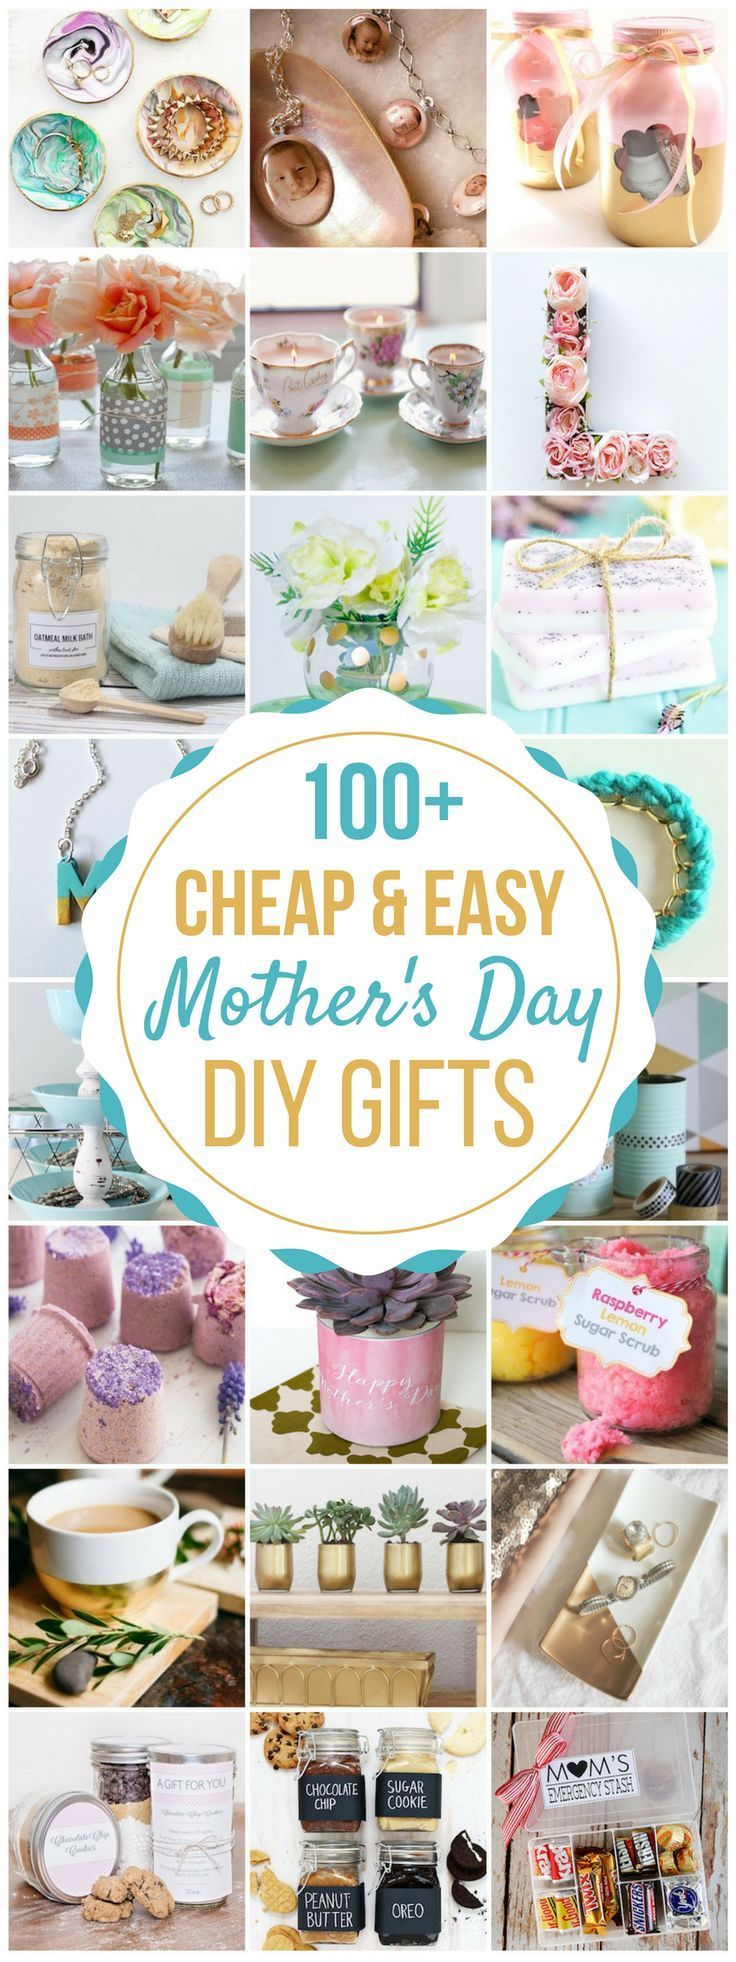 100 Cheap & Easy DIY Mother's Day Gifts